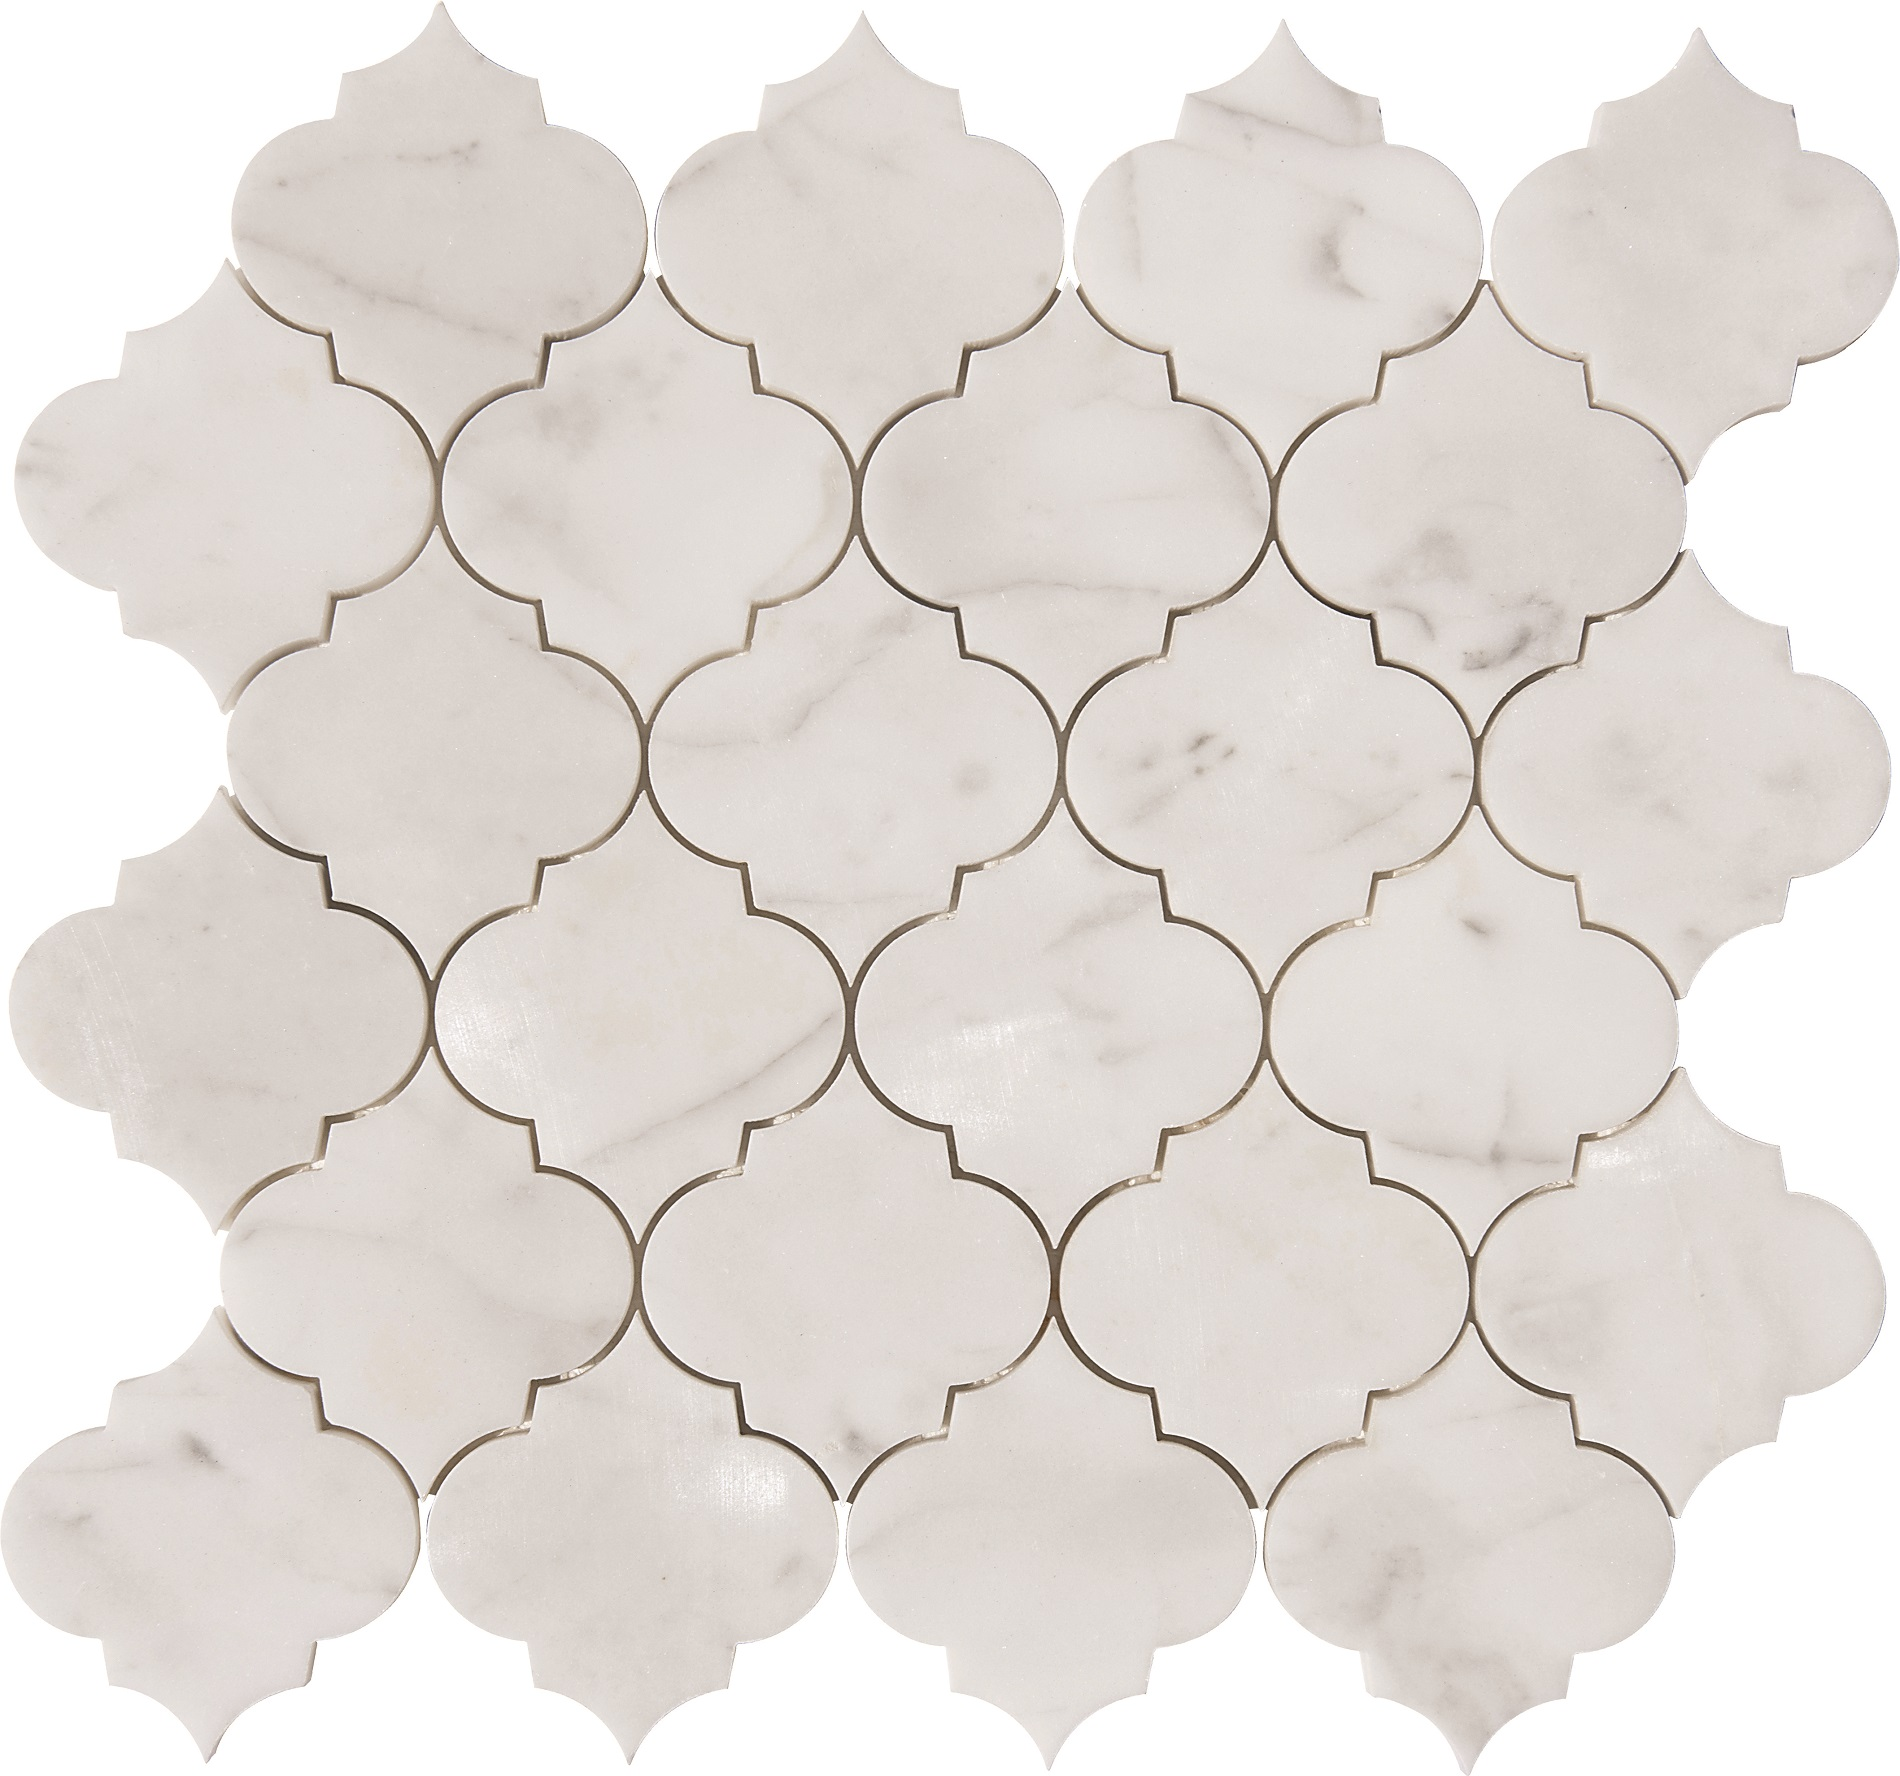 Arabesque Marble Tile Calacatta Gold Arabesque Waterjet Mosaics Polished